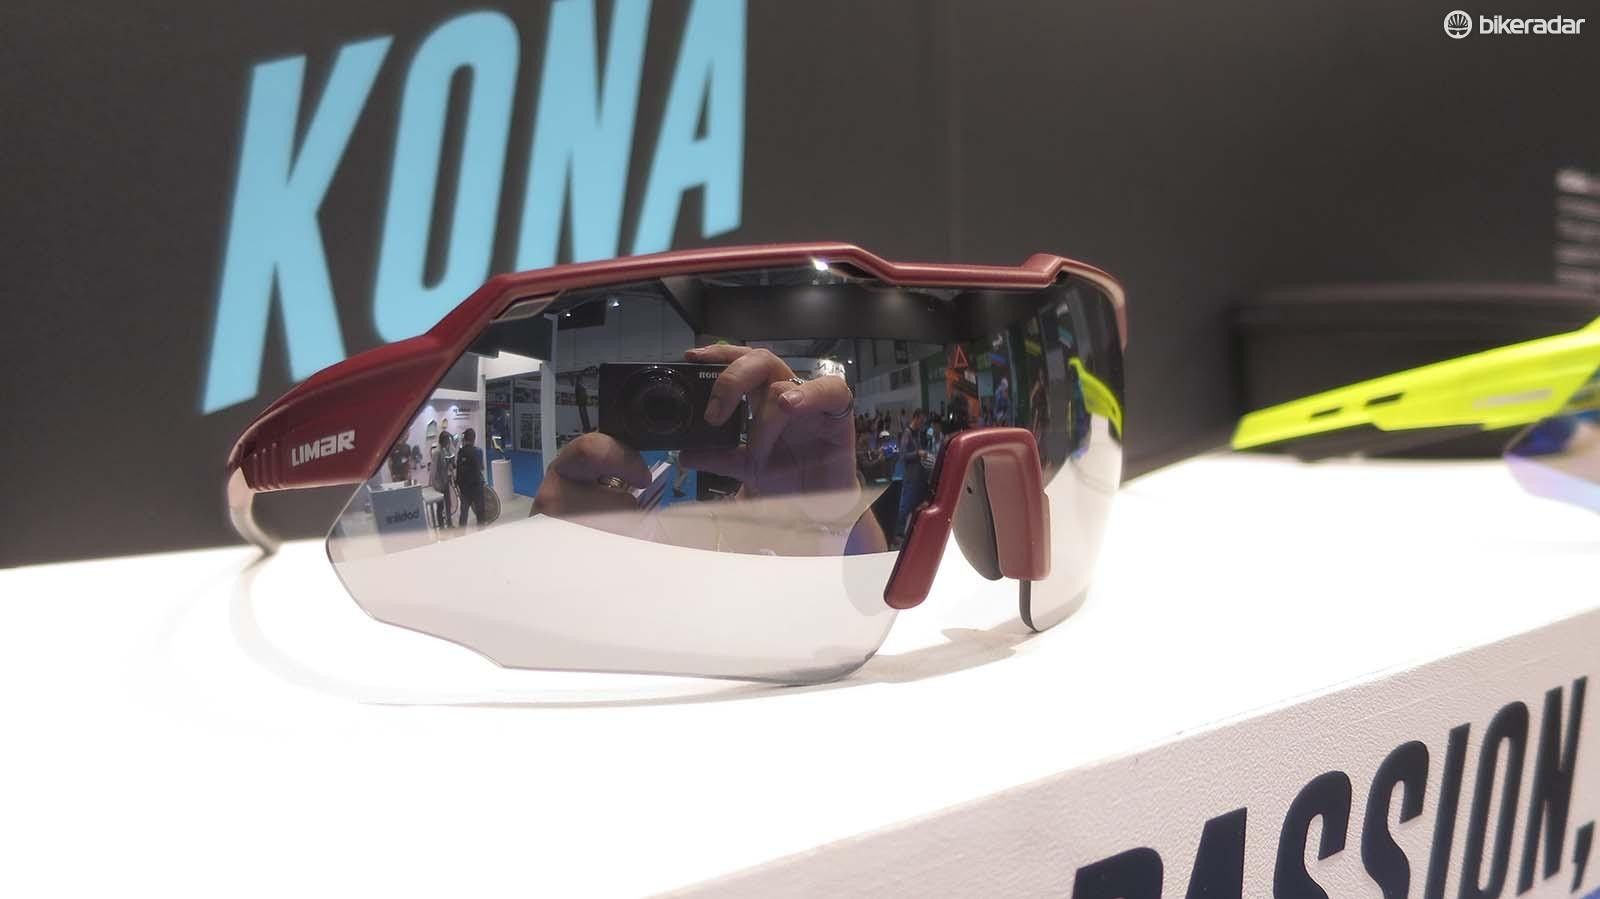 The new Kona glass from Limar is a nice mix of '80s retro and modern detailing